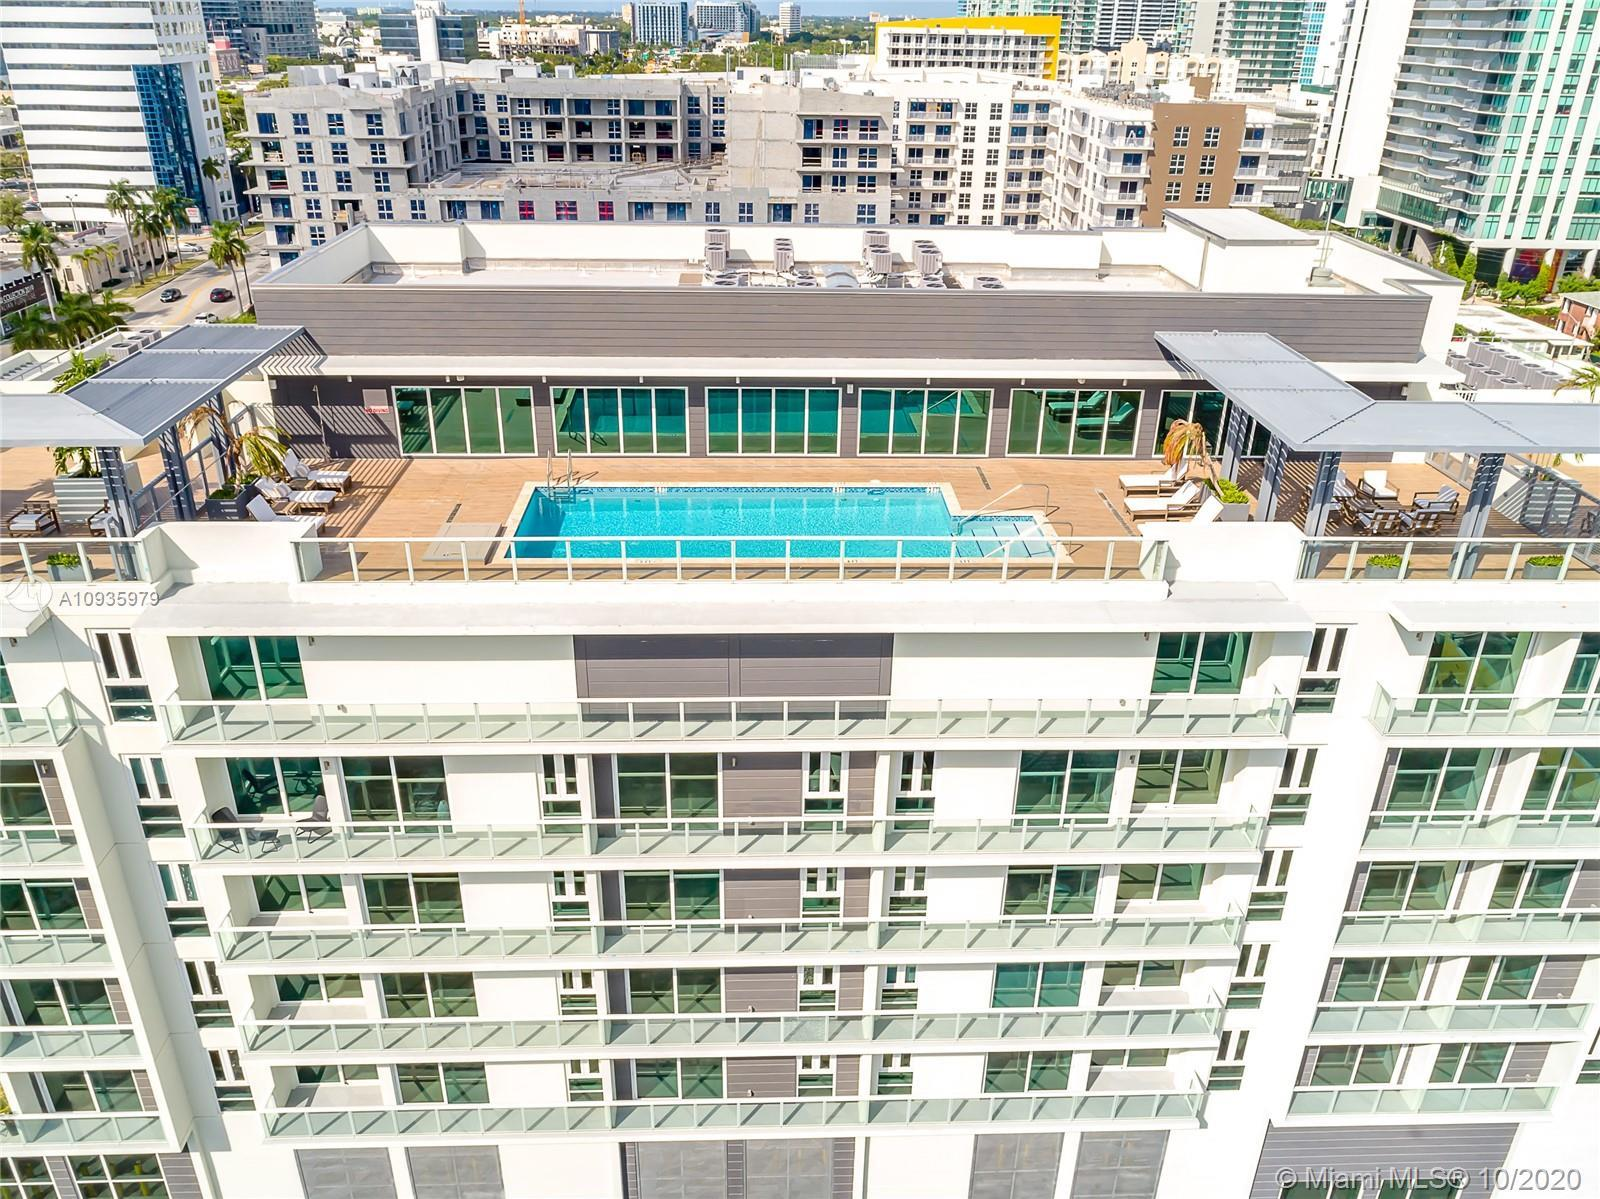 One of a kind 1 bedroom unit available at one of the newest luxury condos in the Biscayne strip feat